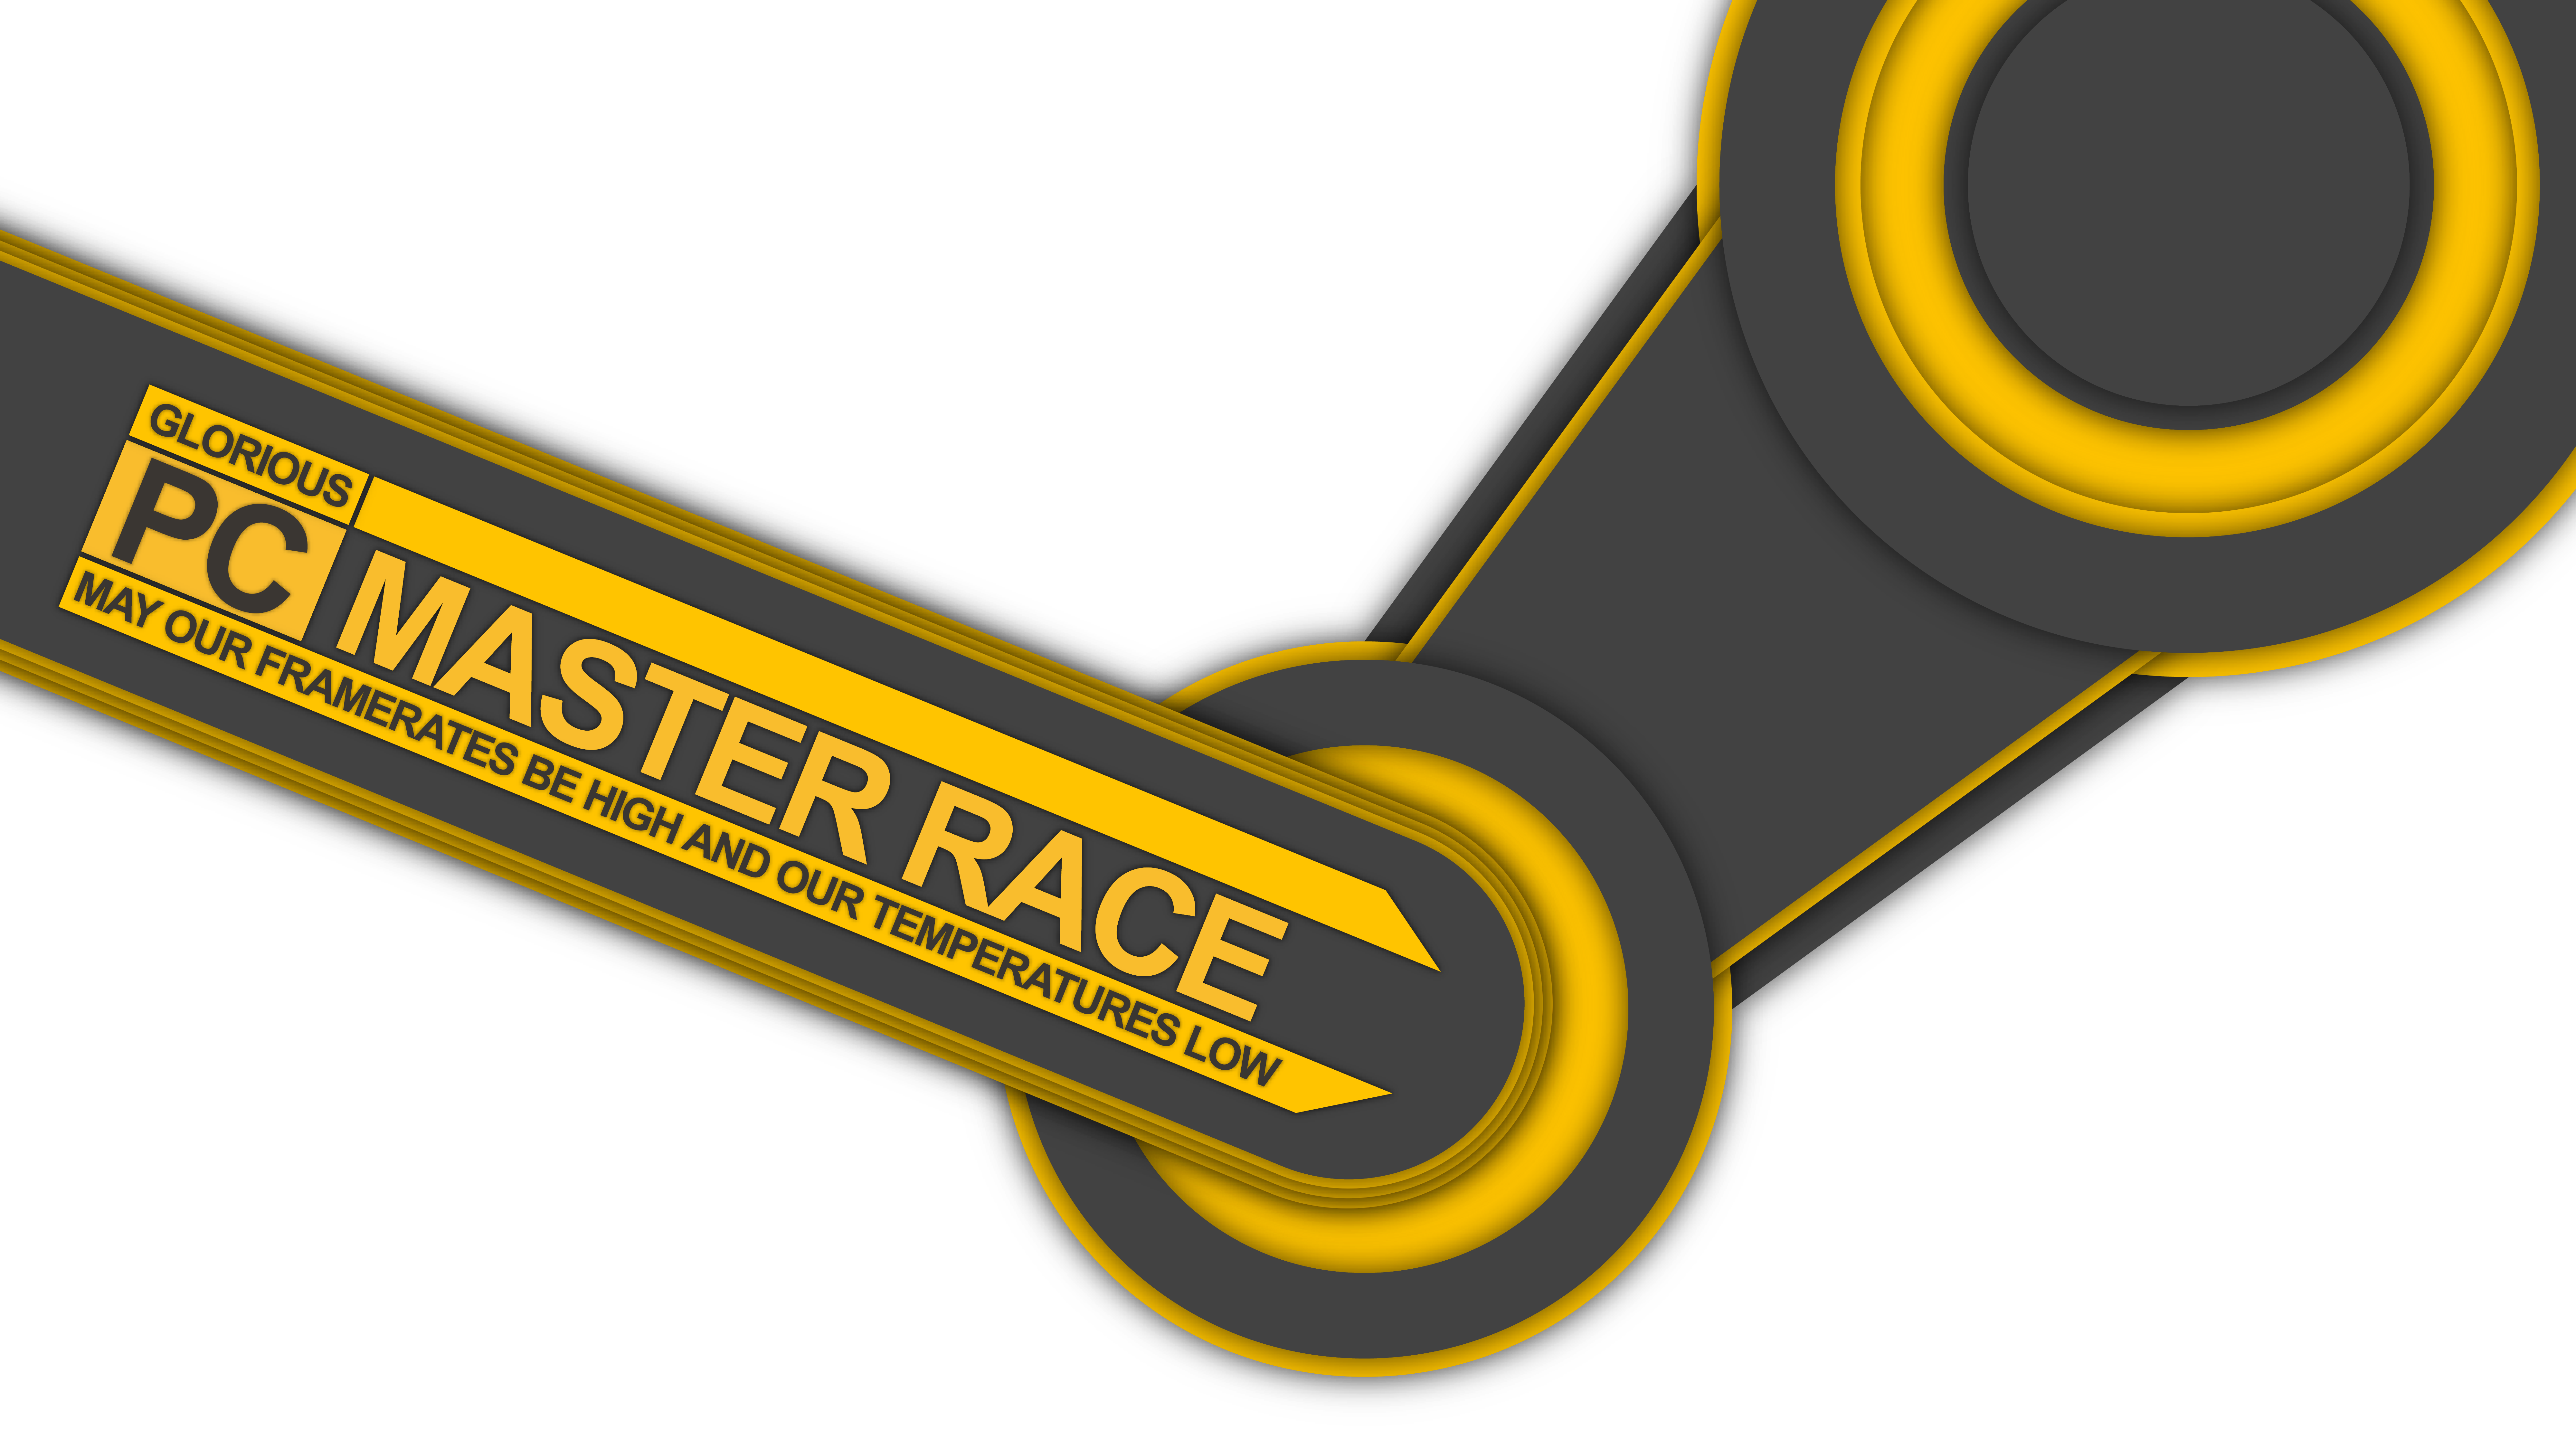 Pc master race icon png. Oc steam logo pcmr